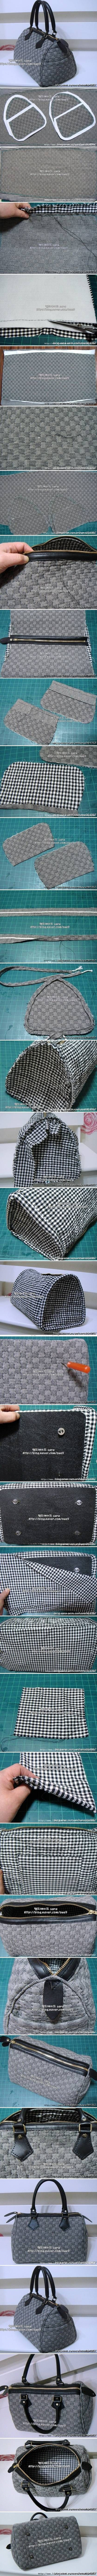 DIY Nice Fashionable Handbag